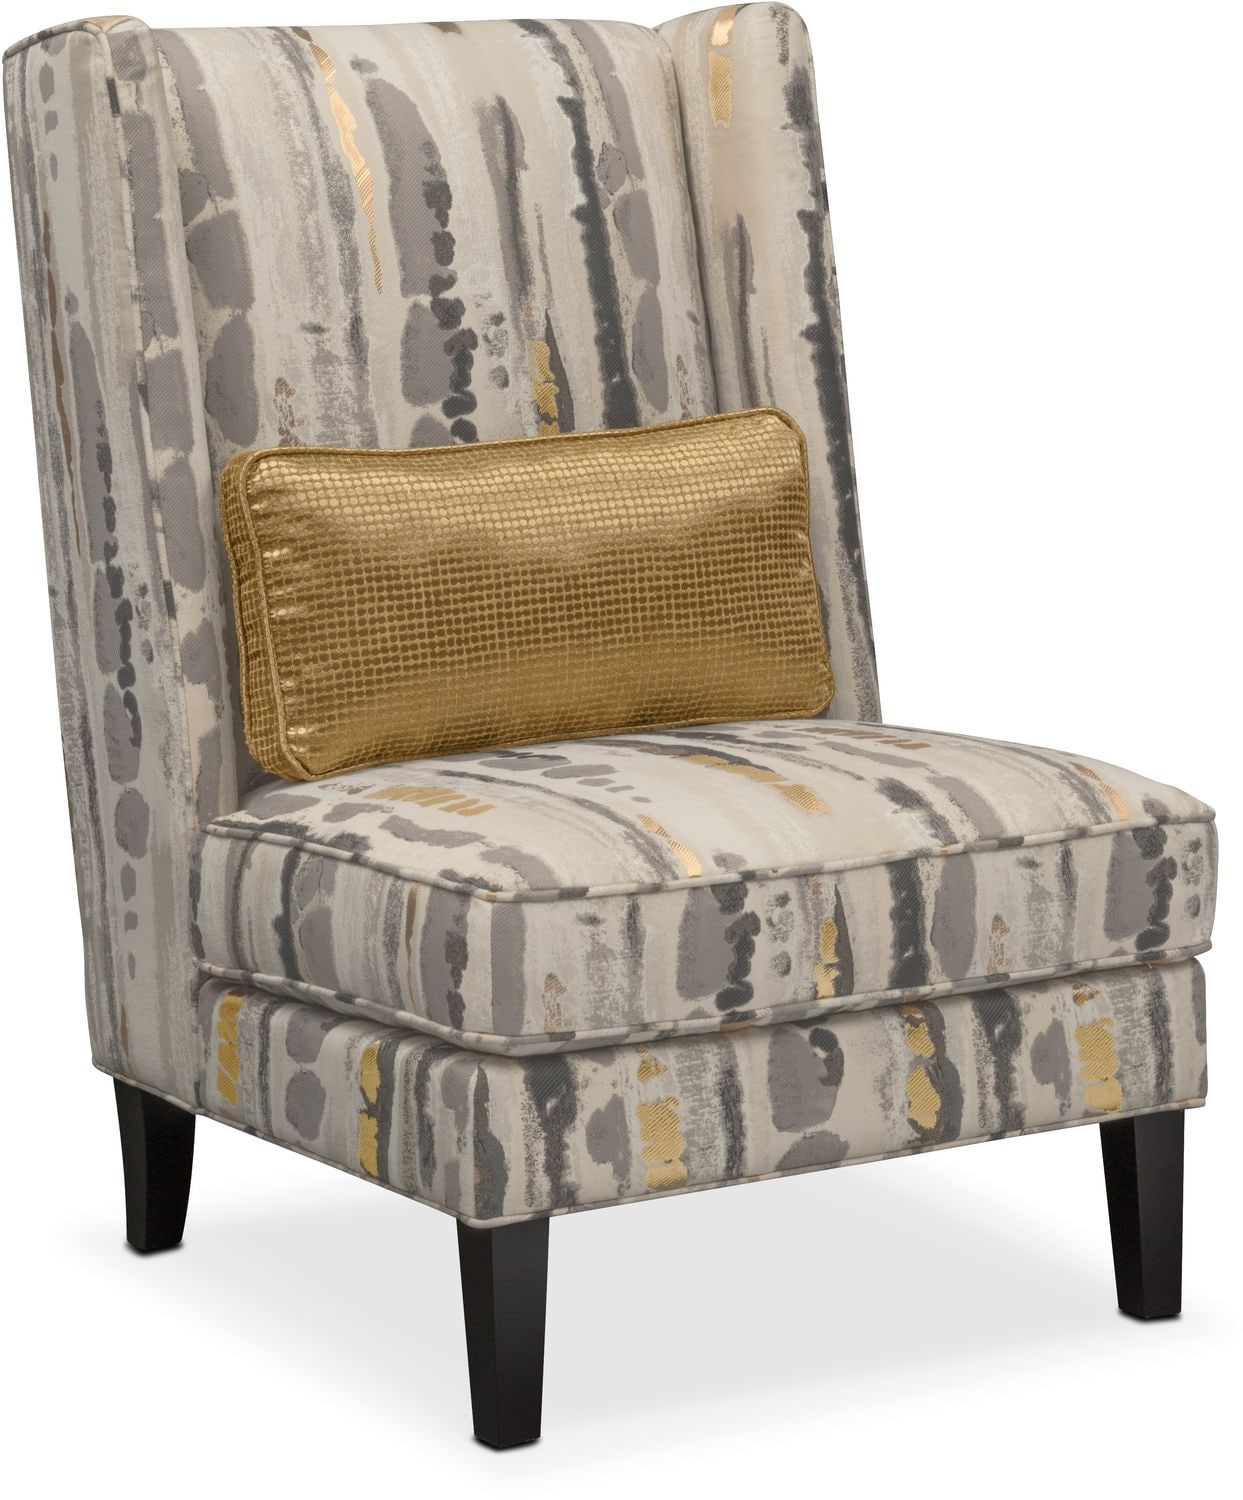 value city furniture accent chairs staples chair accessories limelight and mattresses living room